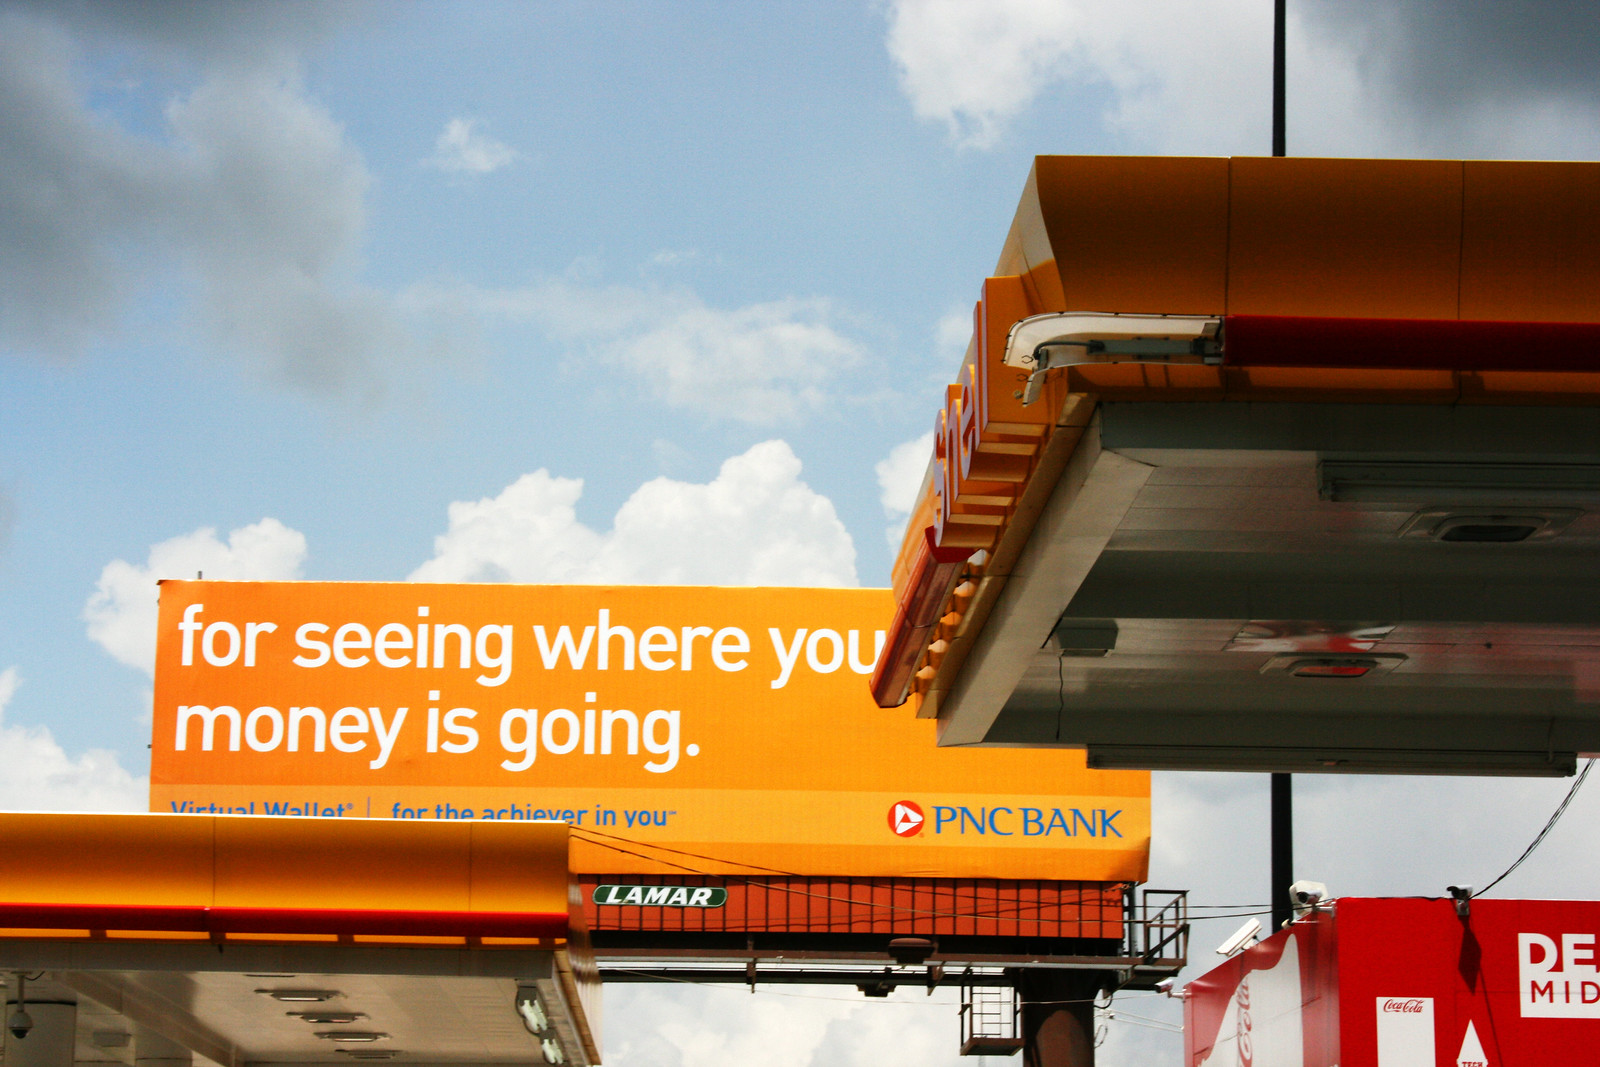 Dean's Midtown Shell Station and PNC Bank Sign